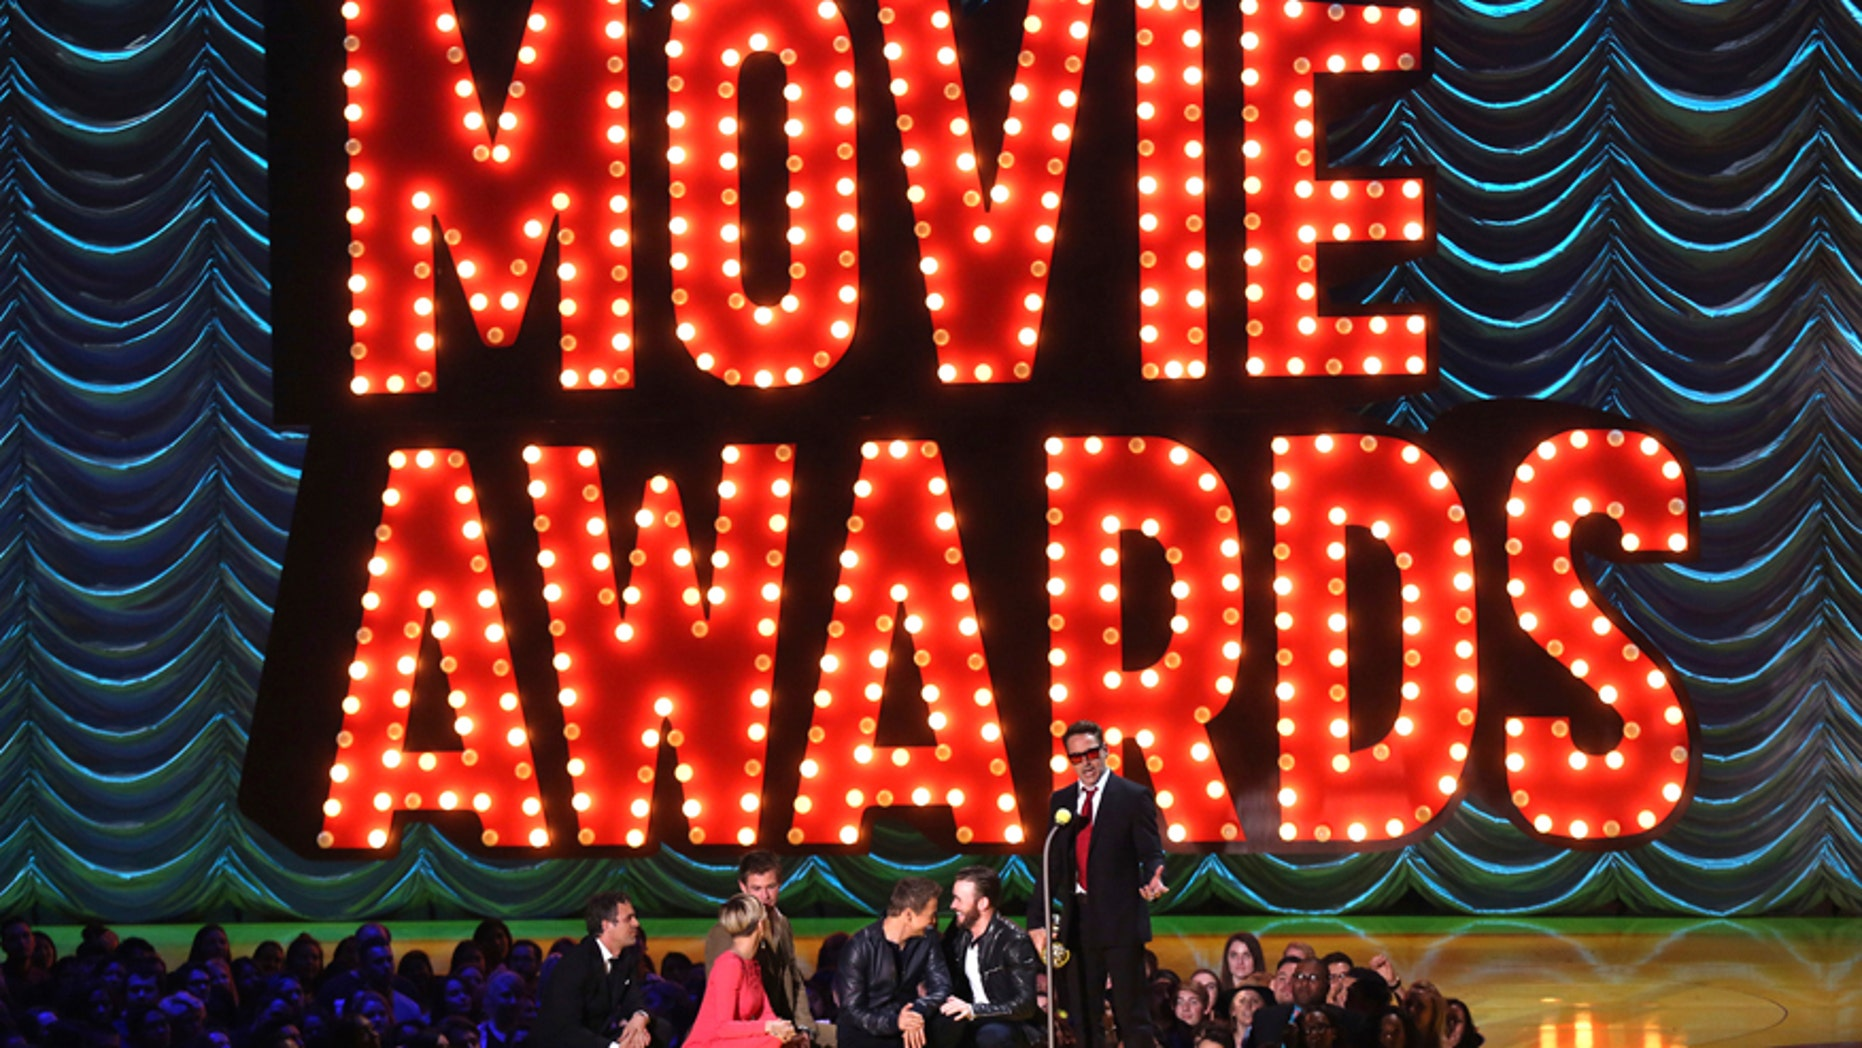 In this April 12, 2015 file photo, Mark Ruffalo, from left, Scarlett Johansson, Chris Hemsworth, Jeremy Renner, and Chris Evans present Robert Downey Jr. with the generation award at the MTV Movie Awards in Los Angeles. MTV announced April 6, 2017, that it has scrapped gender specific categories for its upcoming Movie & TV Awards. This the first year the MTV Movie Awards has been redubbed the Movie & TV Awards.